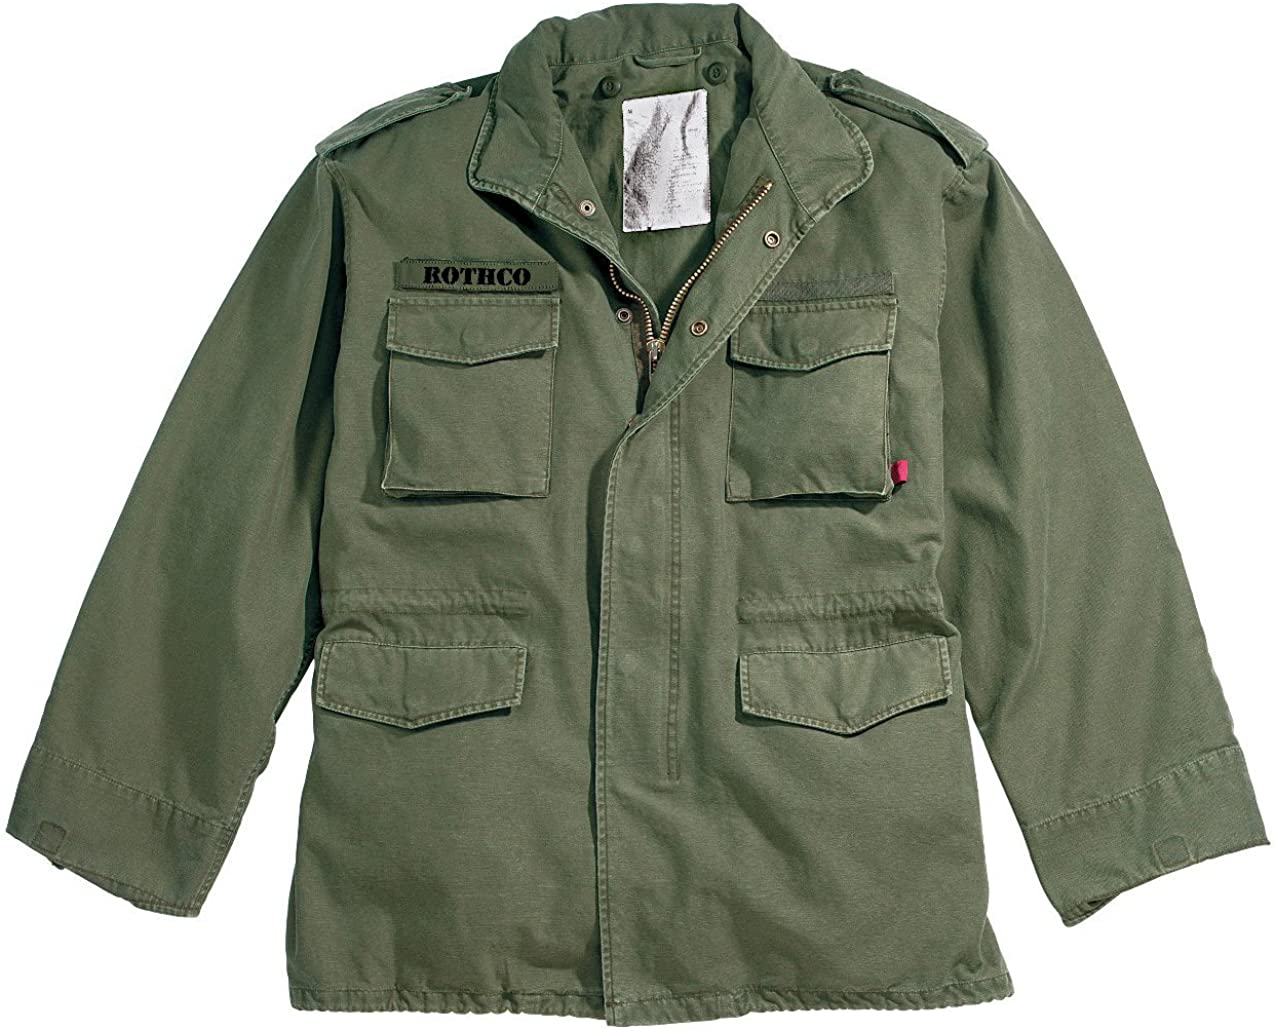 60s 70s Men's Jackets & Sweaters Rothco Vintage M-65 Field Jackets $97.62 AT vintagedancer.com